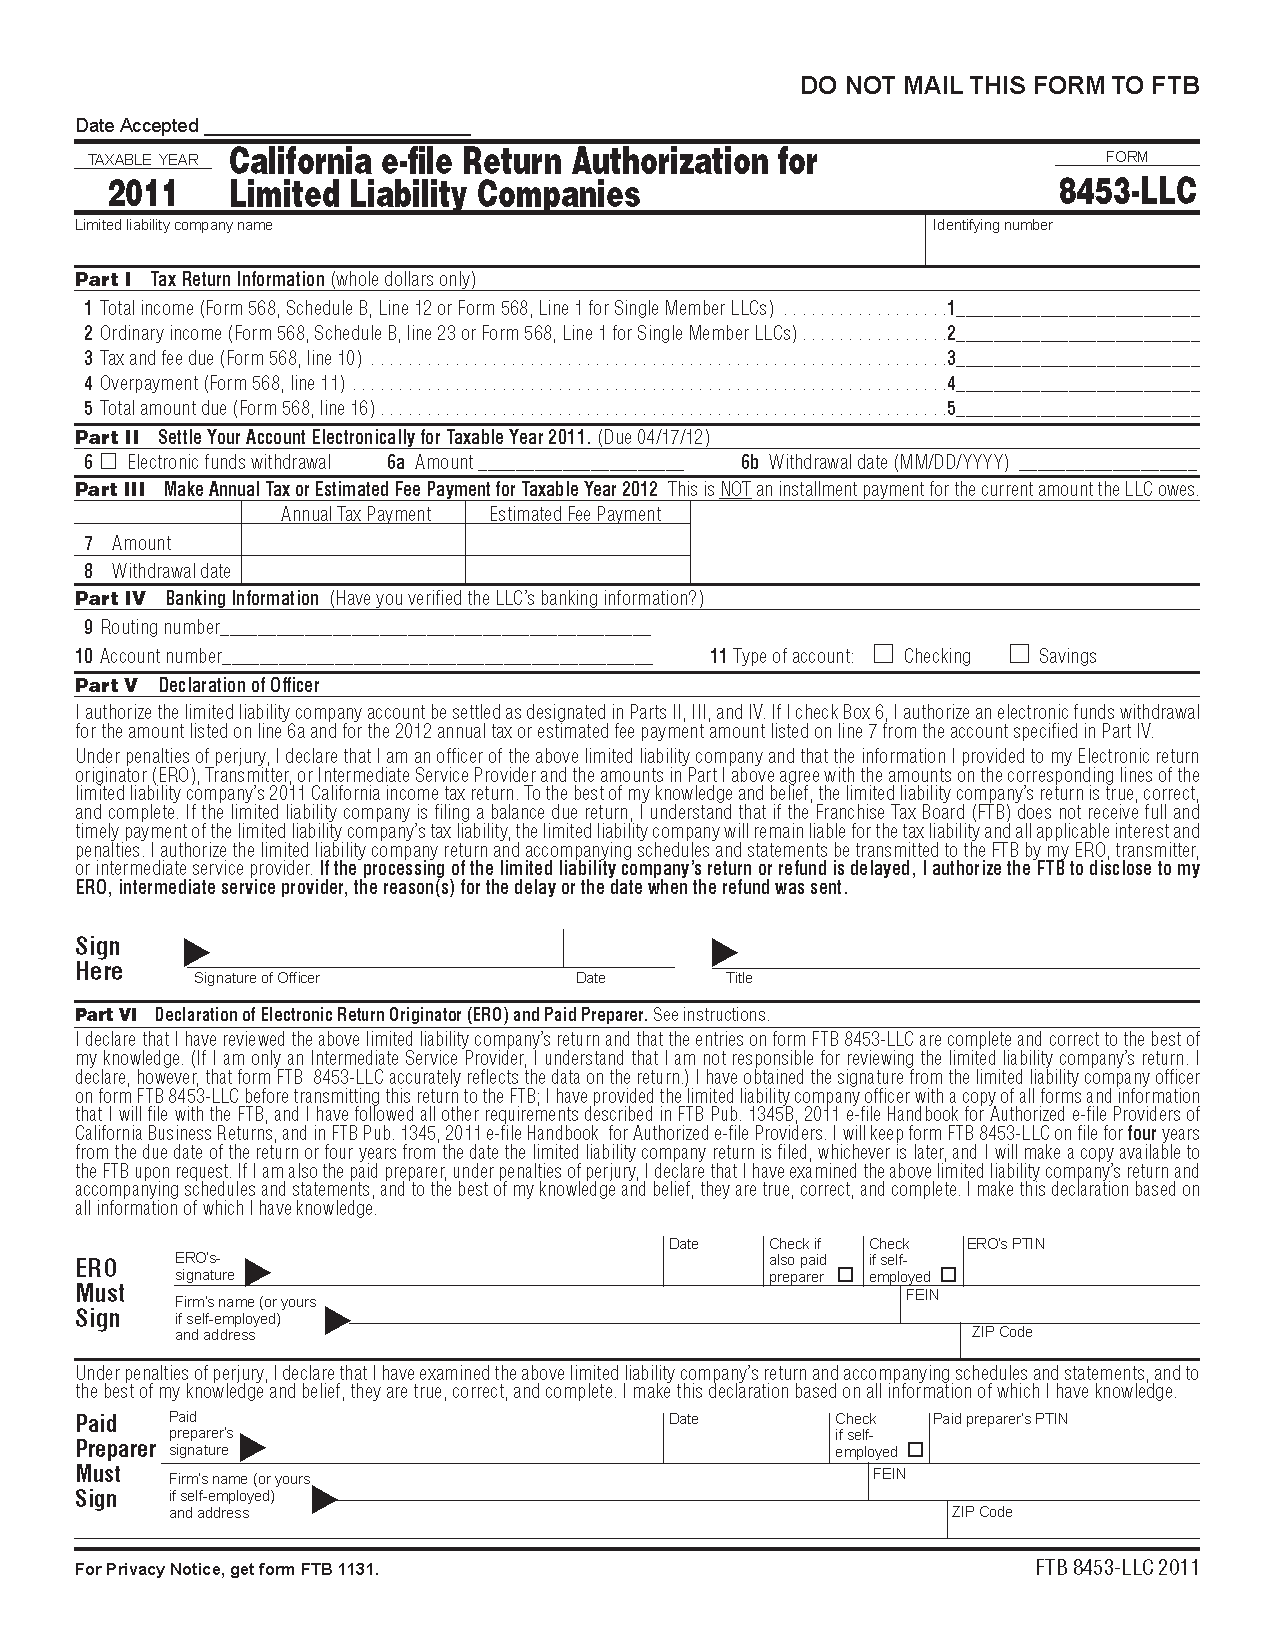 8453LLC Form California e-file Return Authorization for Limited ...